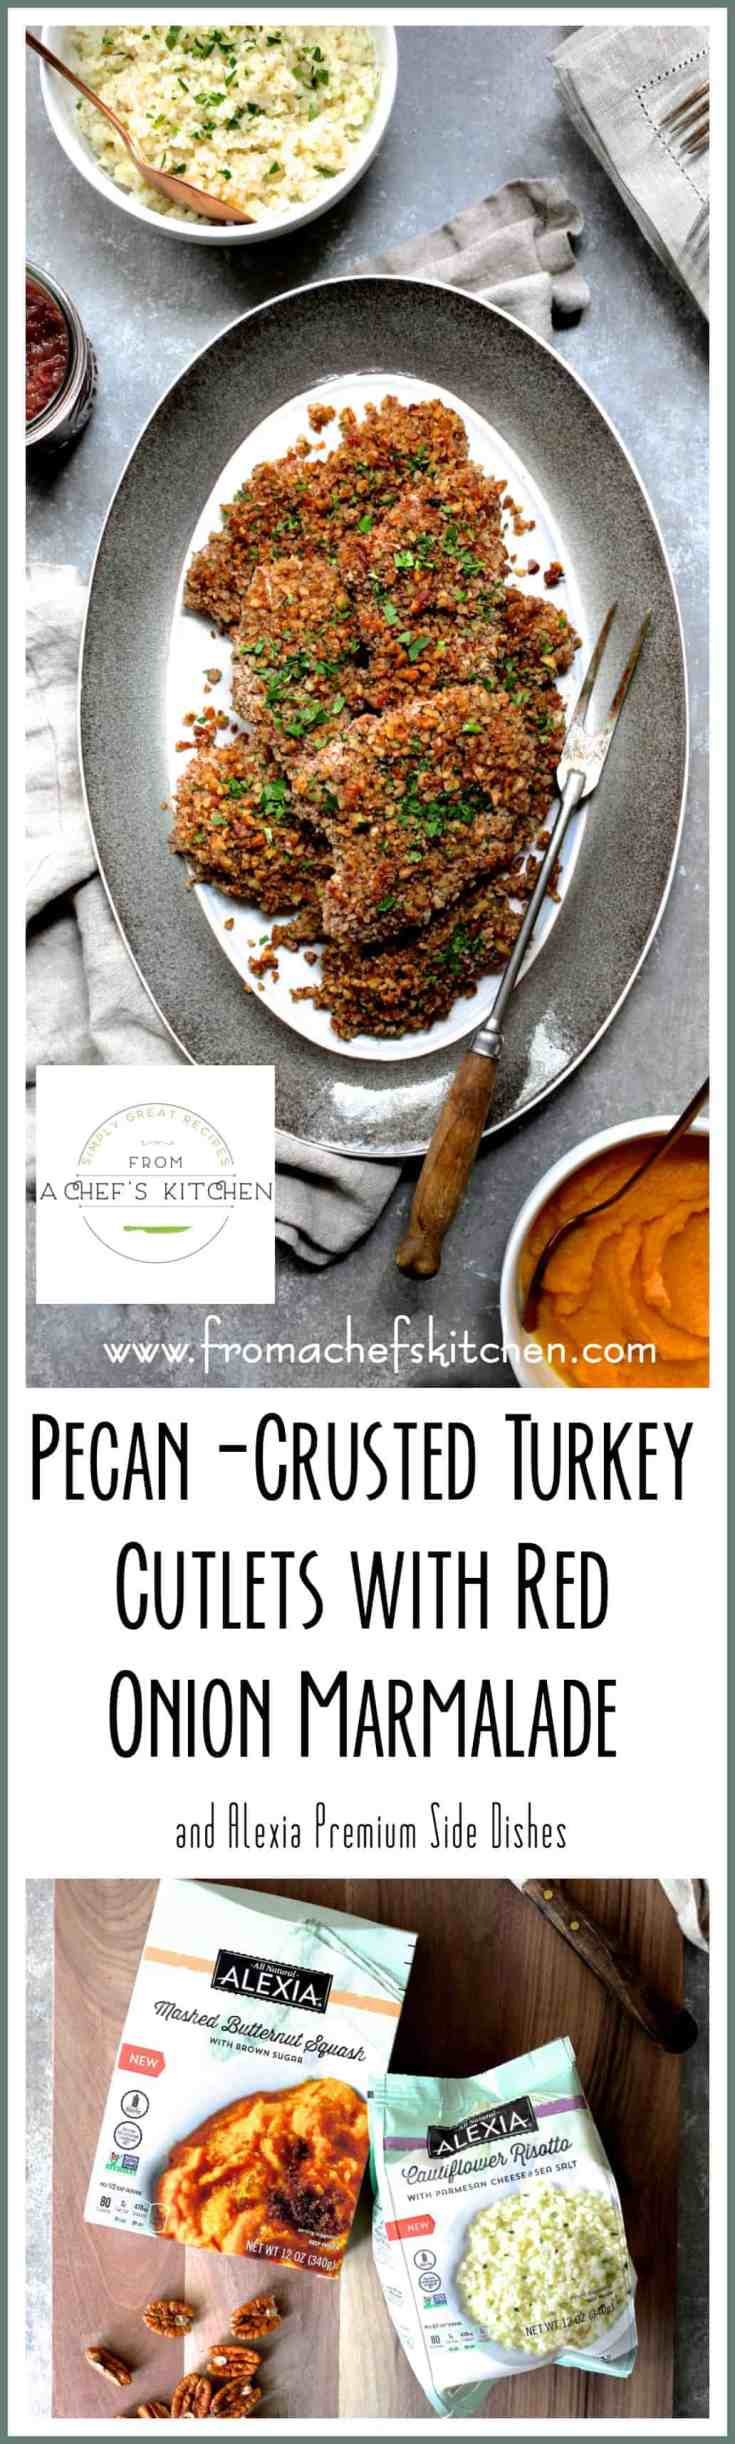 #ad #AlexiaVeggieSides - Pecan Crusted Turkey Cutlets with Red Onion Marmalade is perfect for any autumn occasion or intimate holiday dinner.  Pair it with complete All-Natural Alexia premium side dishes and it's easy AND elegant! @alexiafoods